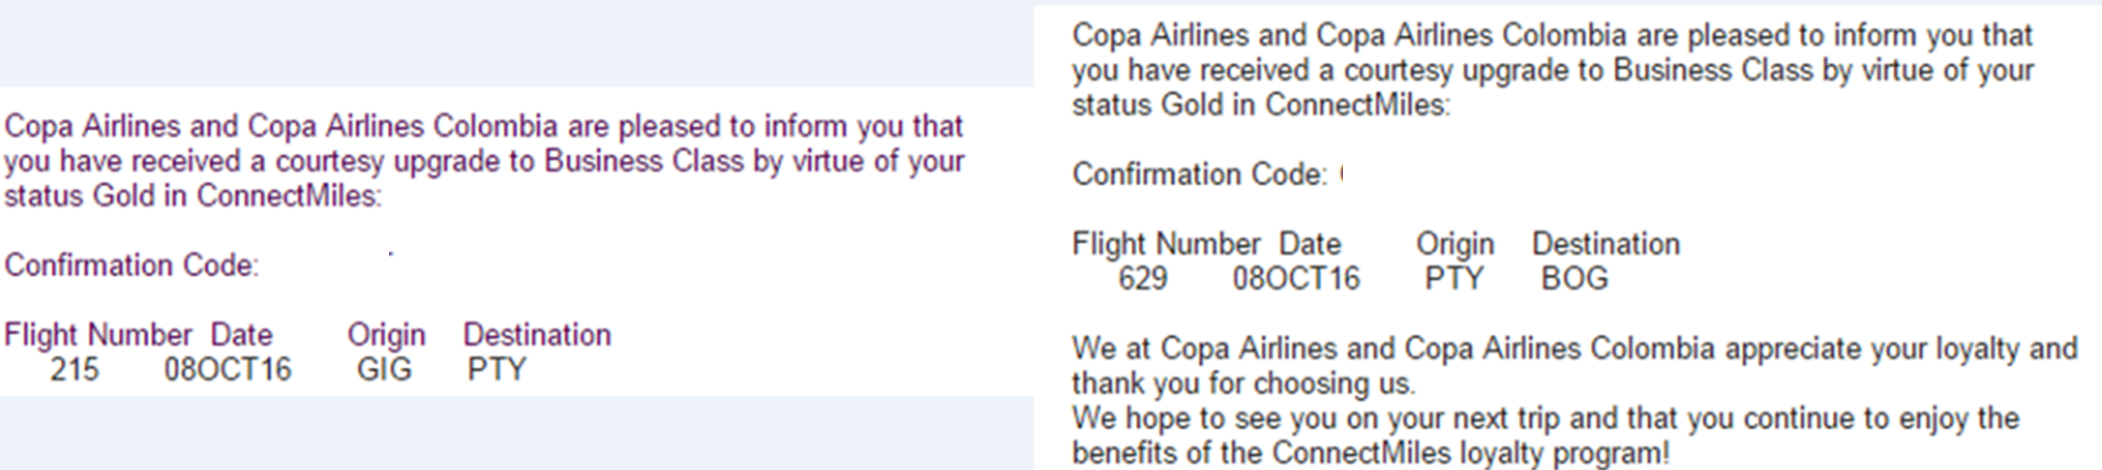 _email-upgrade-copa